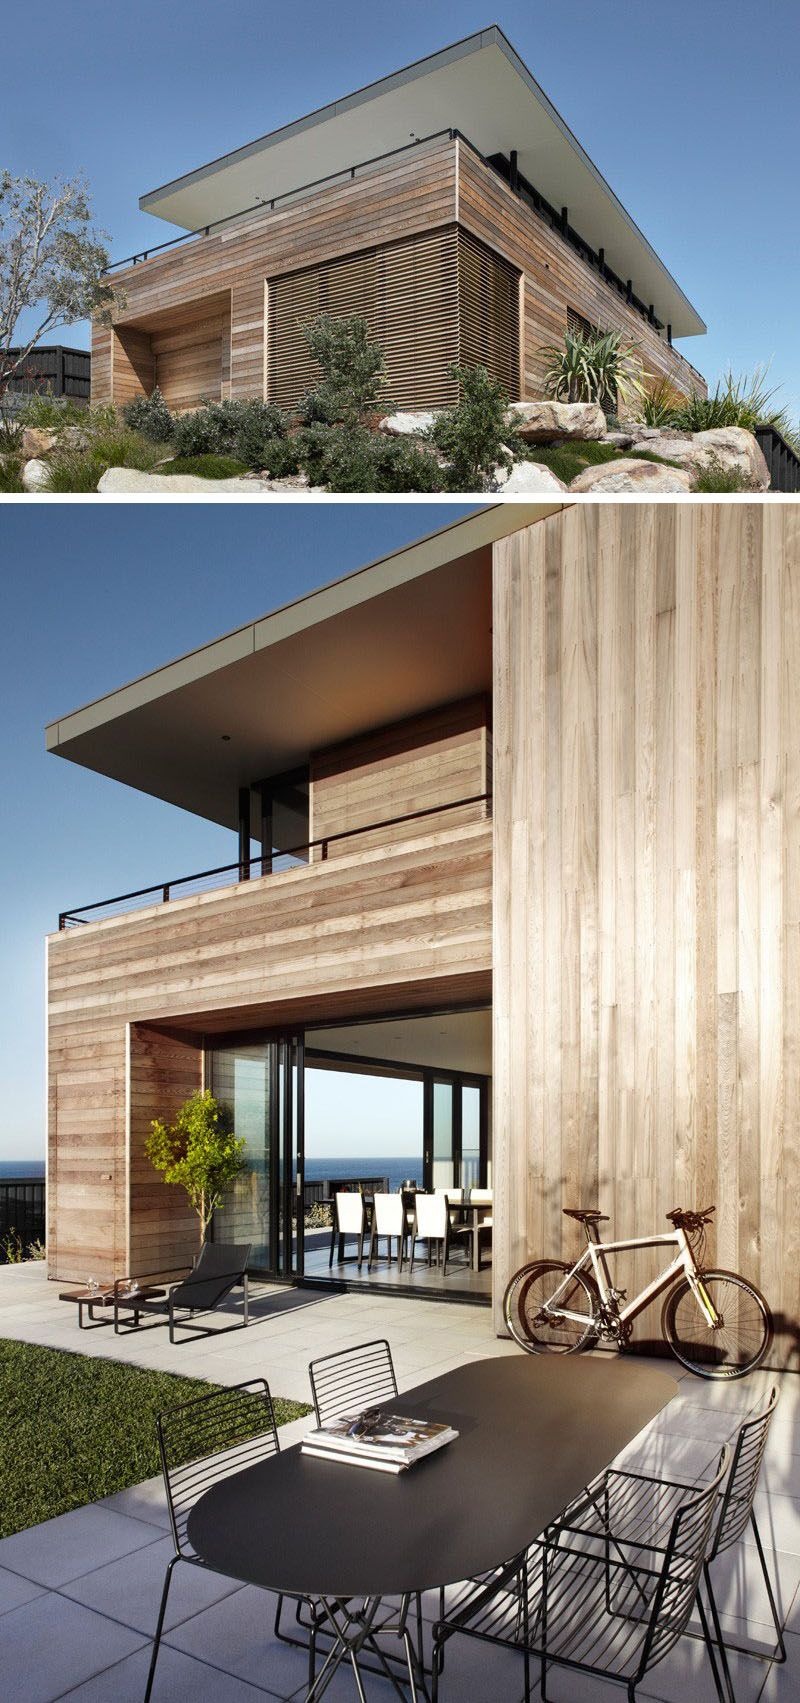 14 Examples Of Modern Beach Houses From Around The World Beach